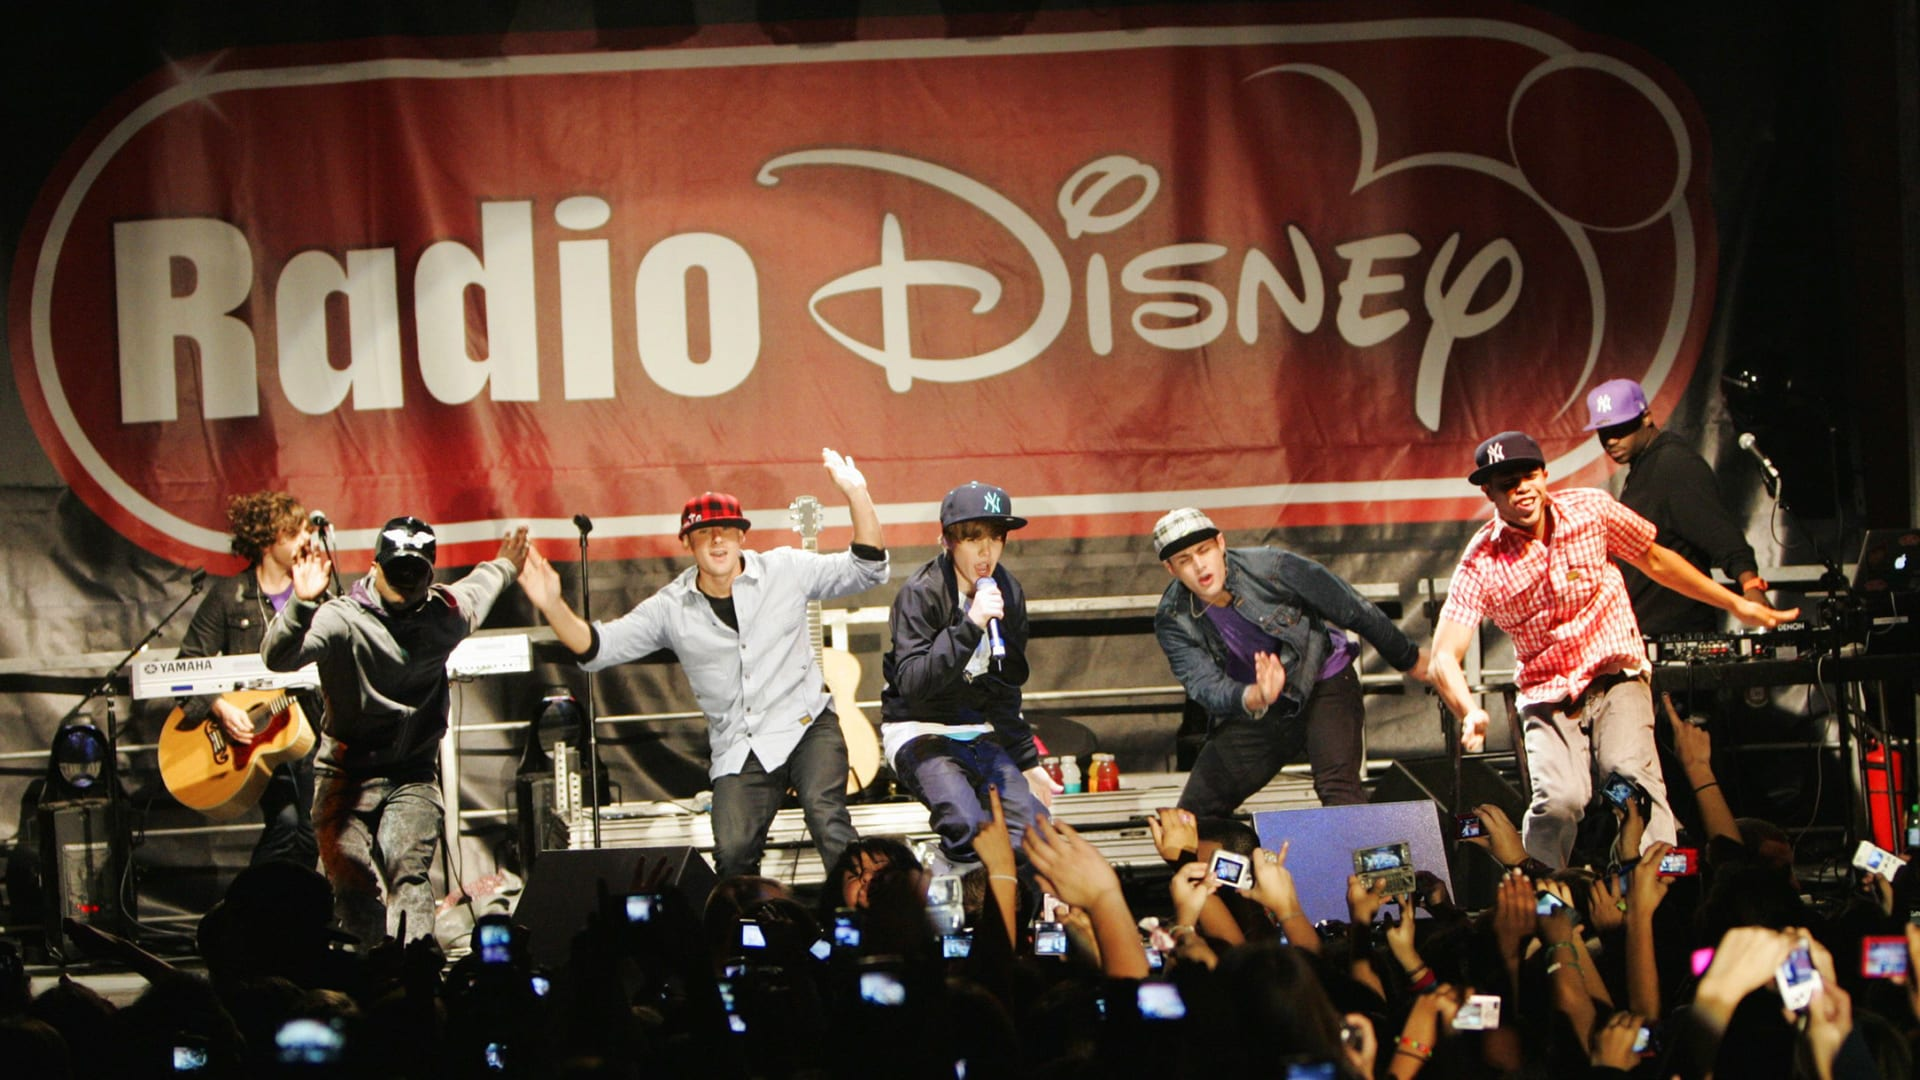 Justin Bieber performs at a concert hosted by Radio Disney on December 14, 2009.